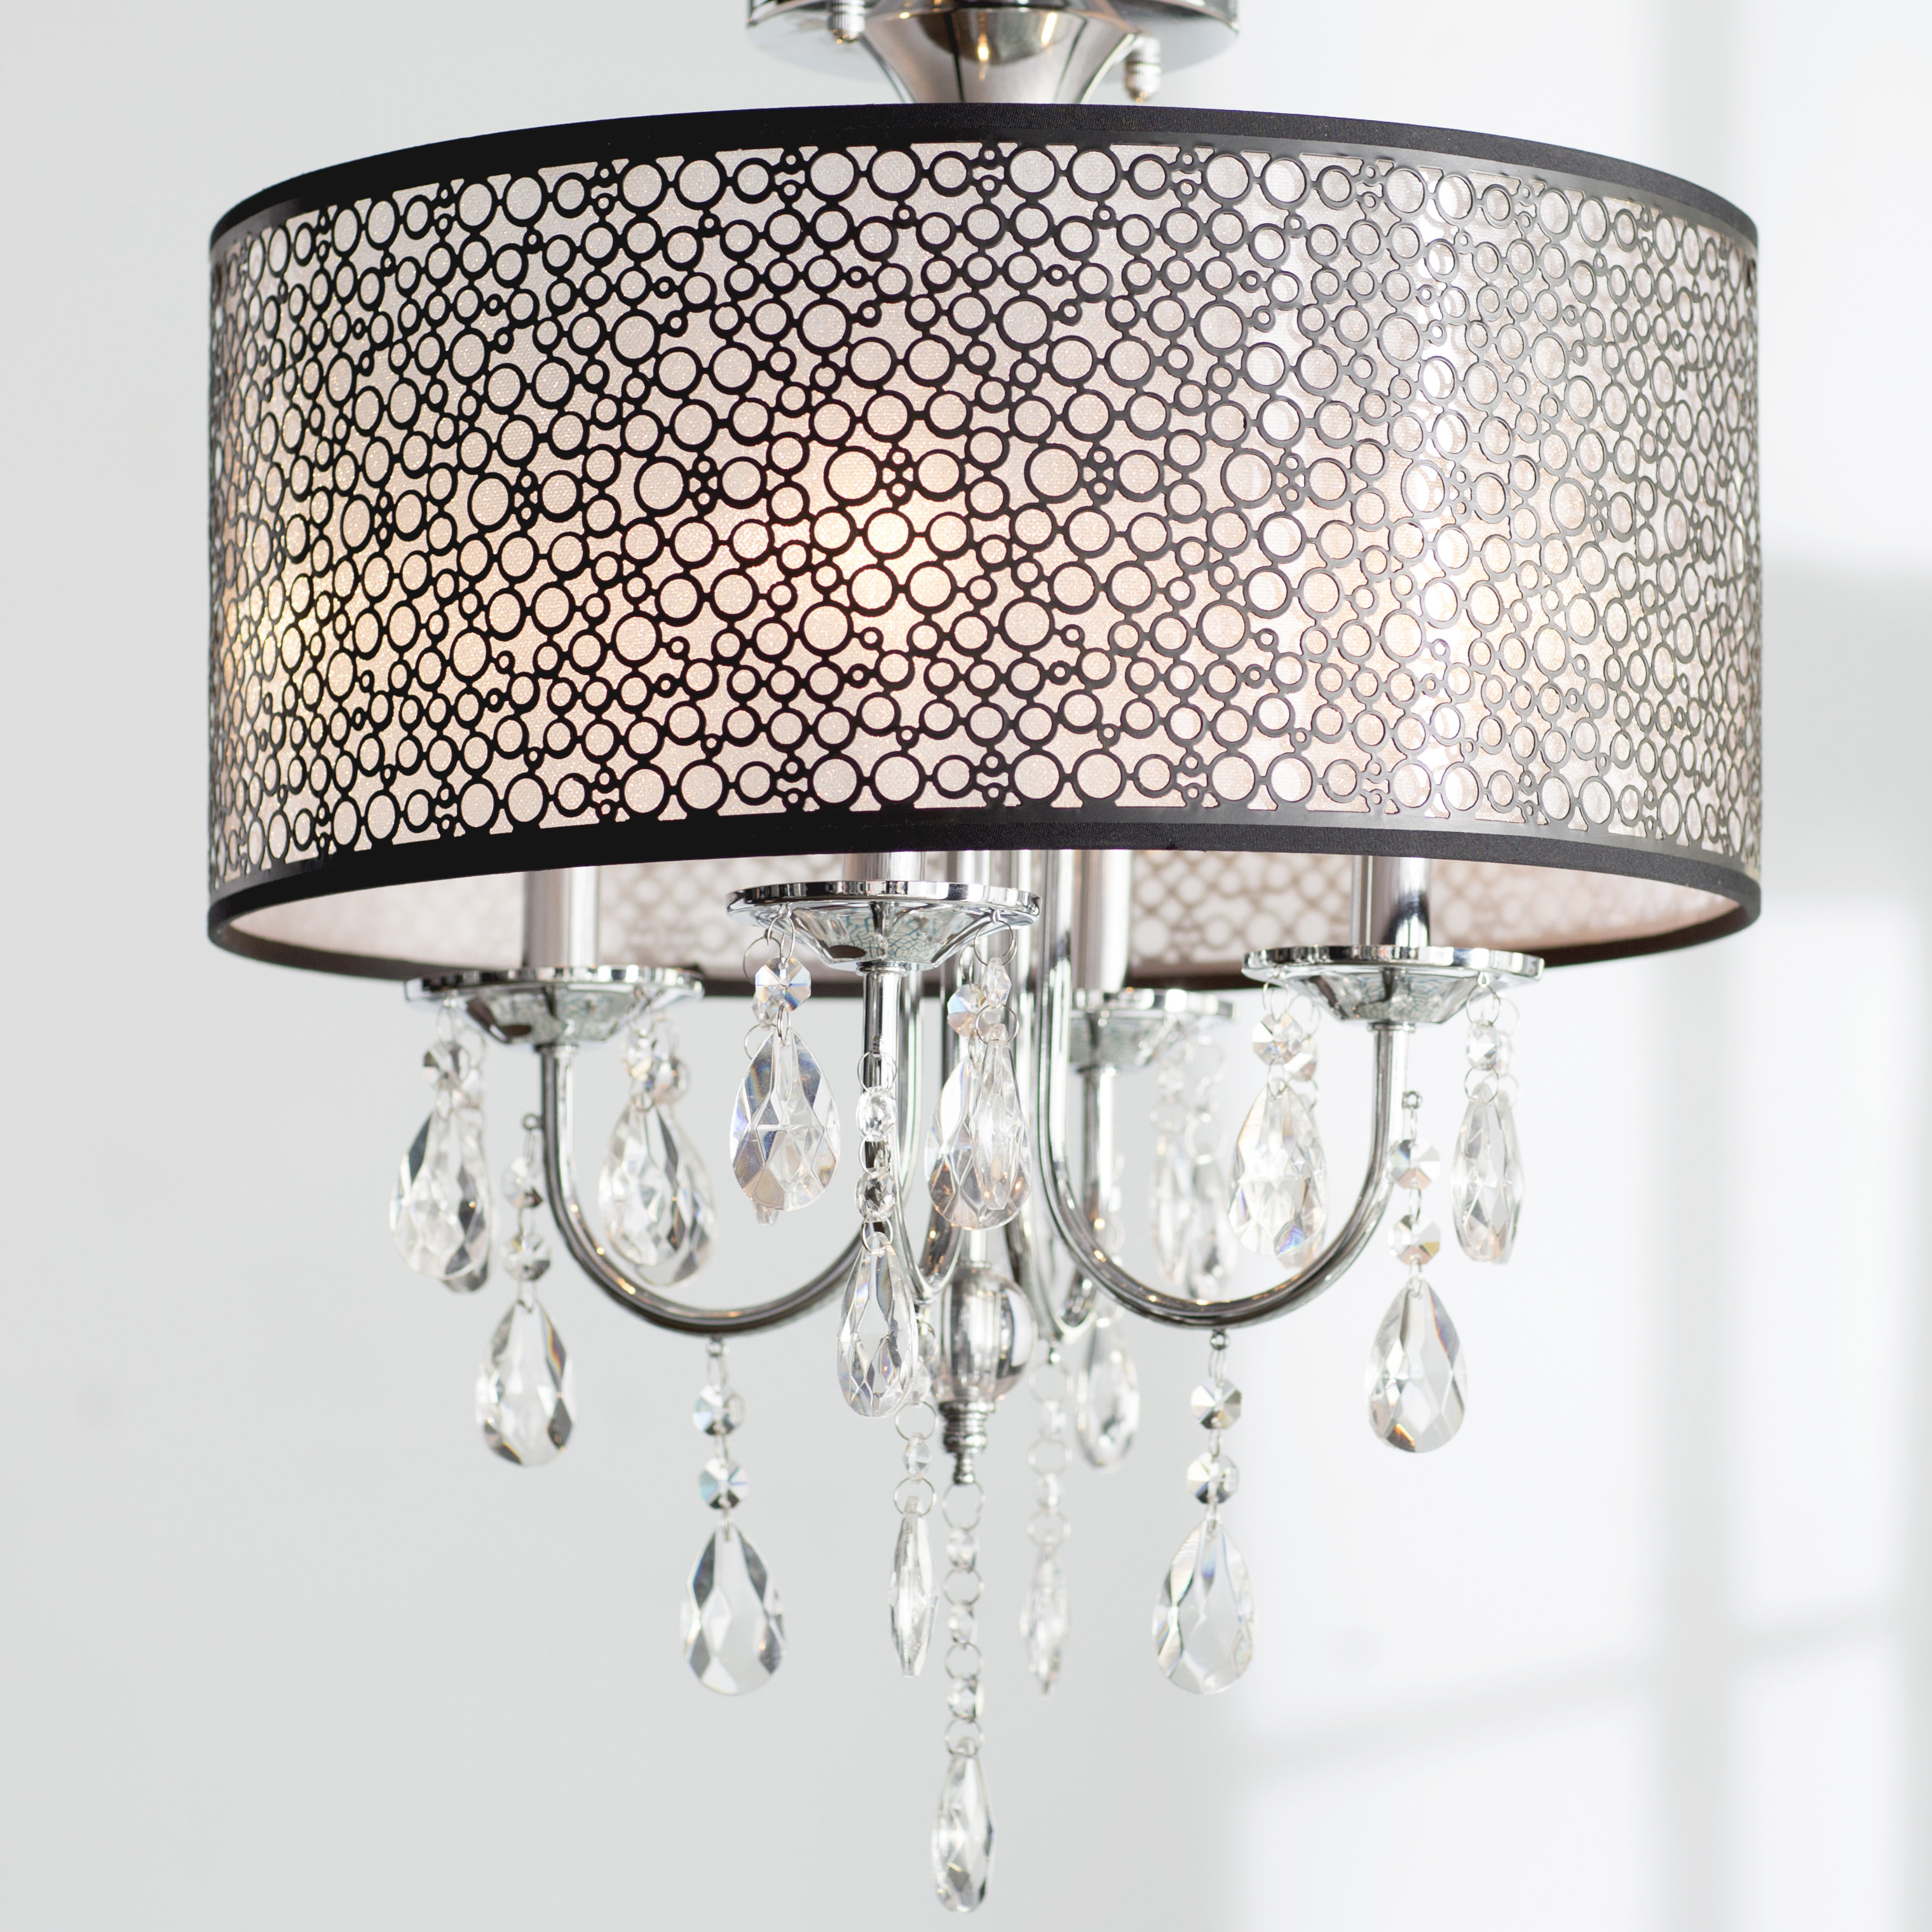 Newest Willa Arlo Interiors Sinead 4-Light Chandelier & Reviews pertaining to Gisselle 4-Light Drum Chandeliers